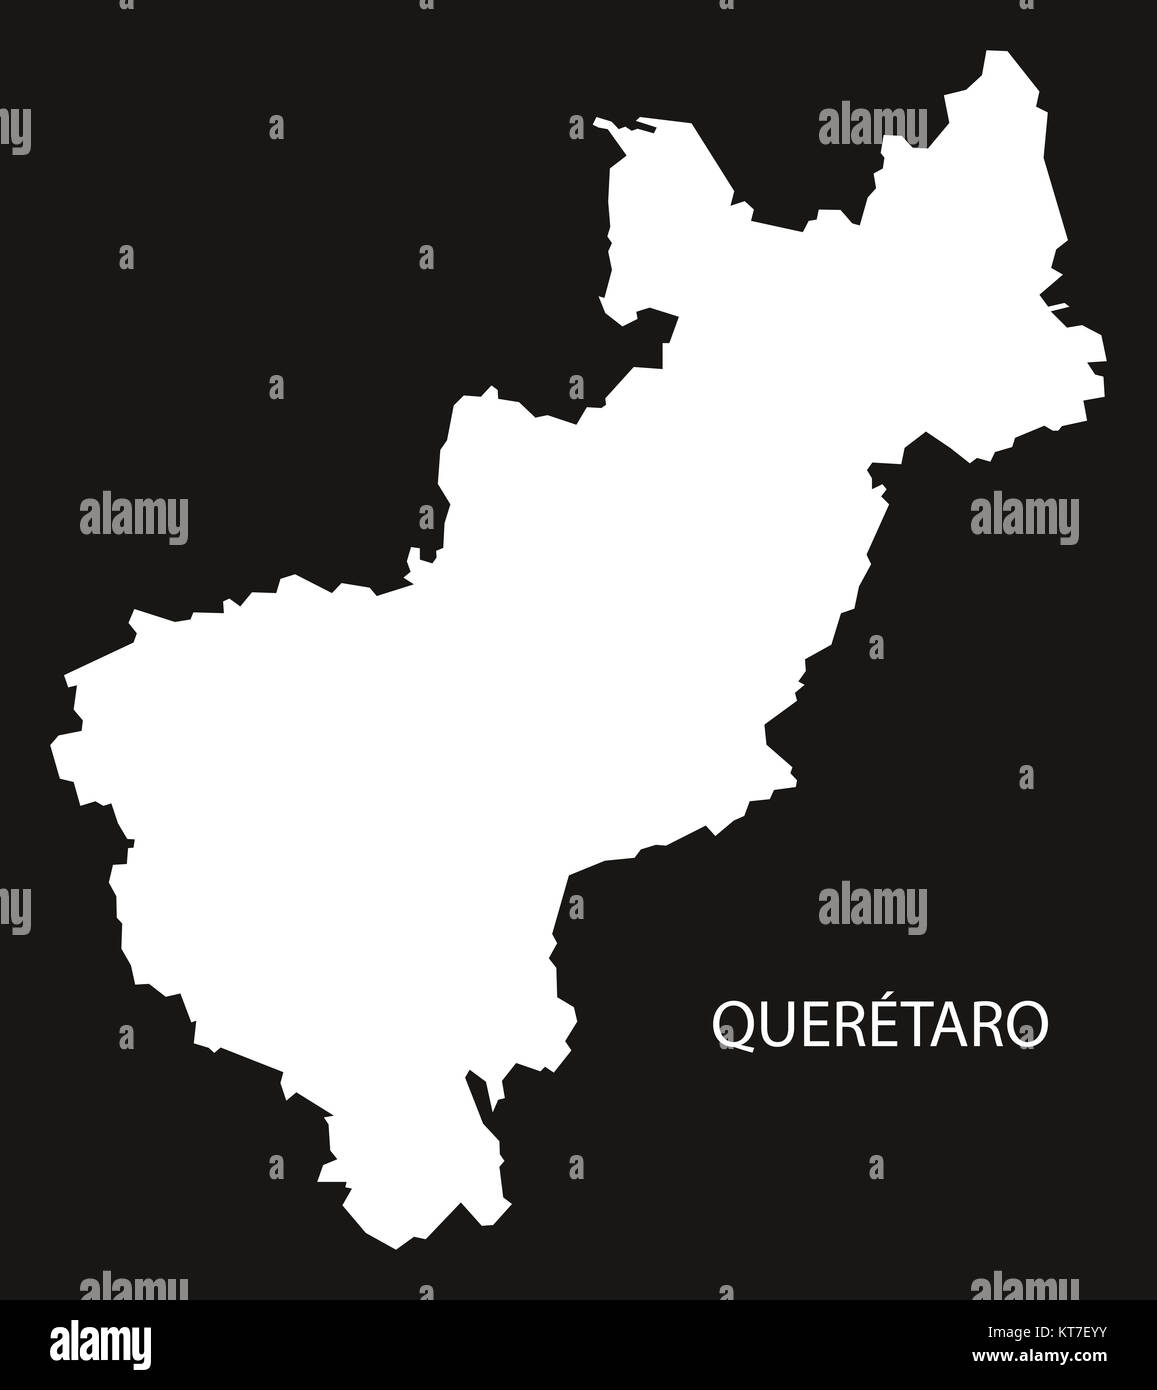 Queretaro Mexico Map black inverted silhouette Stock Photo